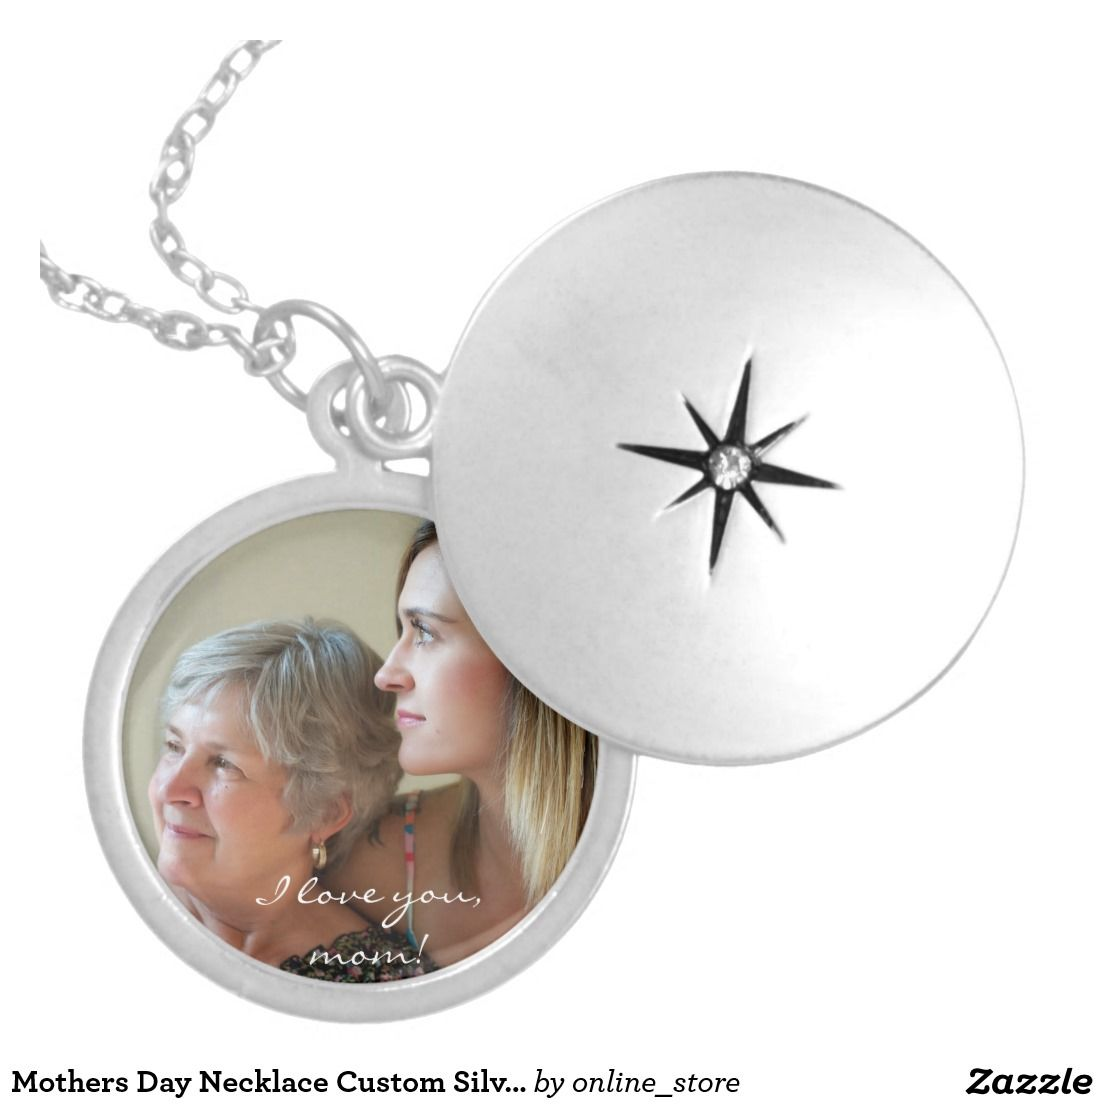 Mothers Day Necklace Custom Silver Plated Locket